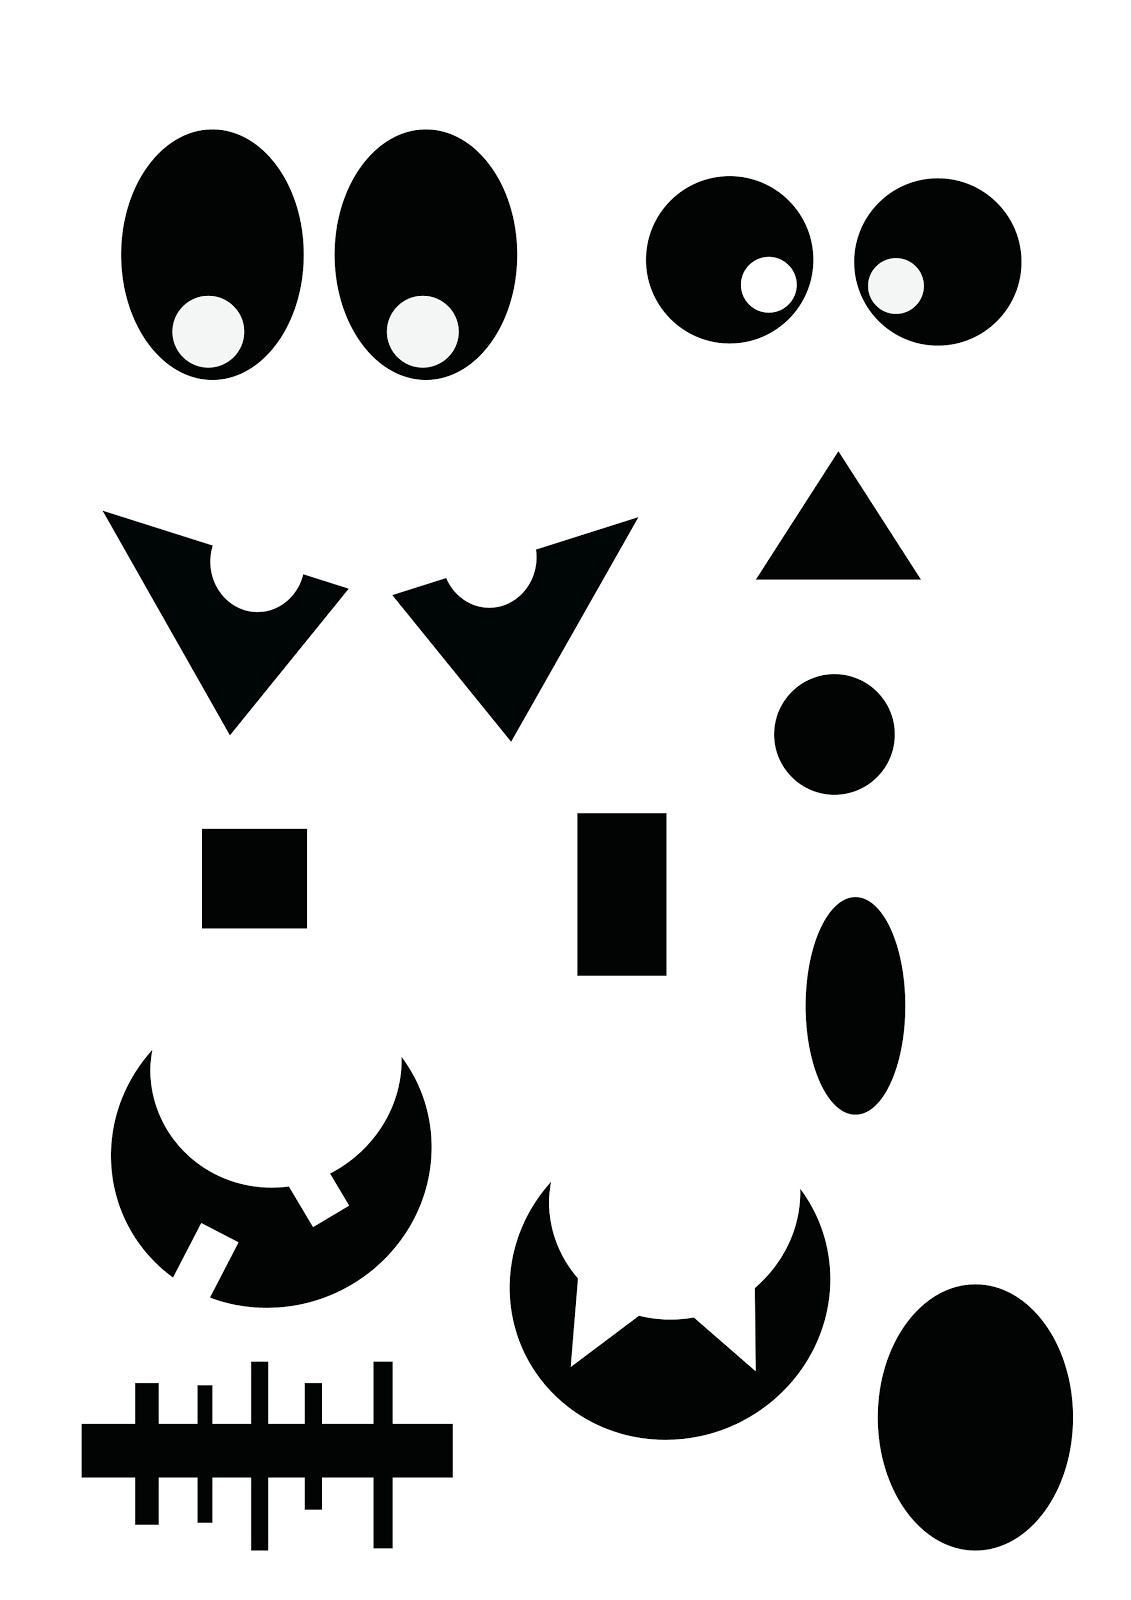 Free Printable Ghost Faces, Download Free Clip Art, Free Clip Art On - Free Printable Halloween Face Masks